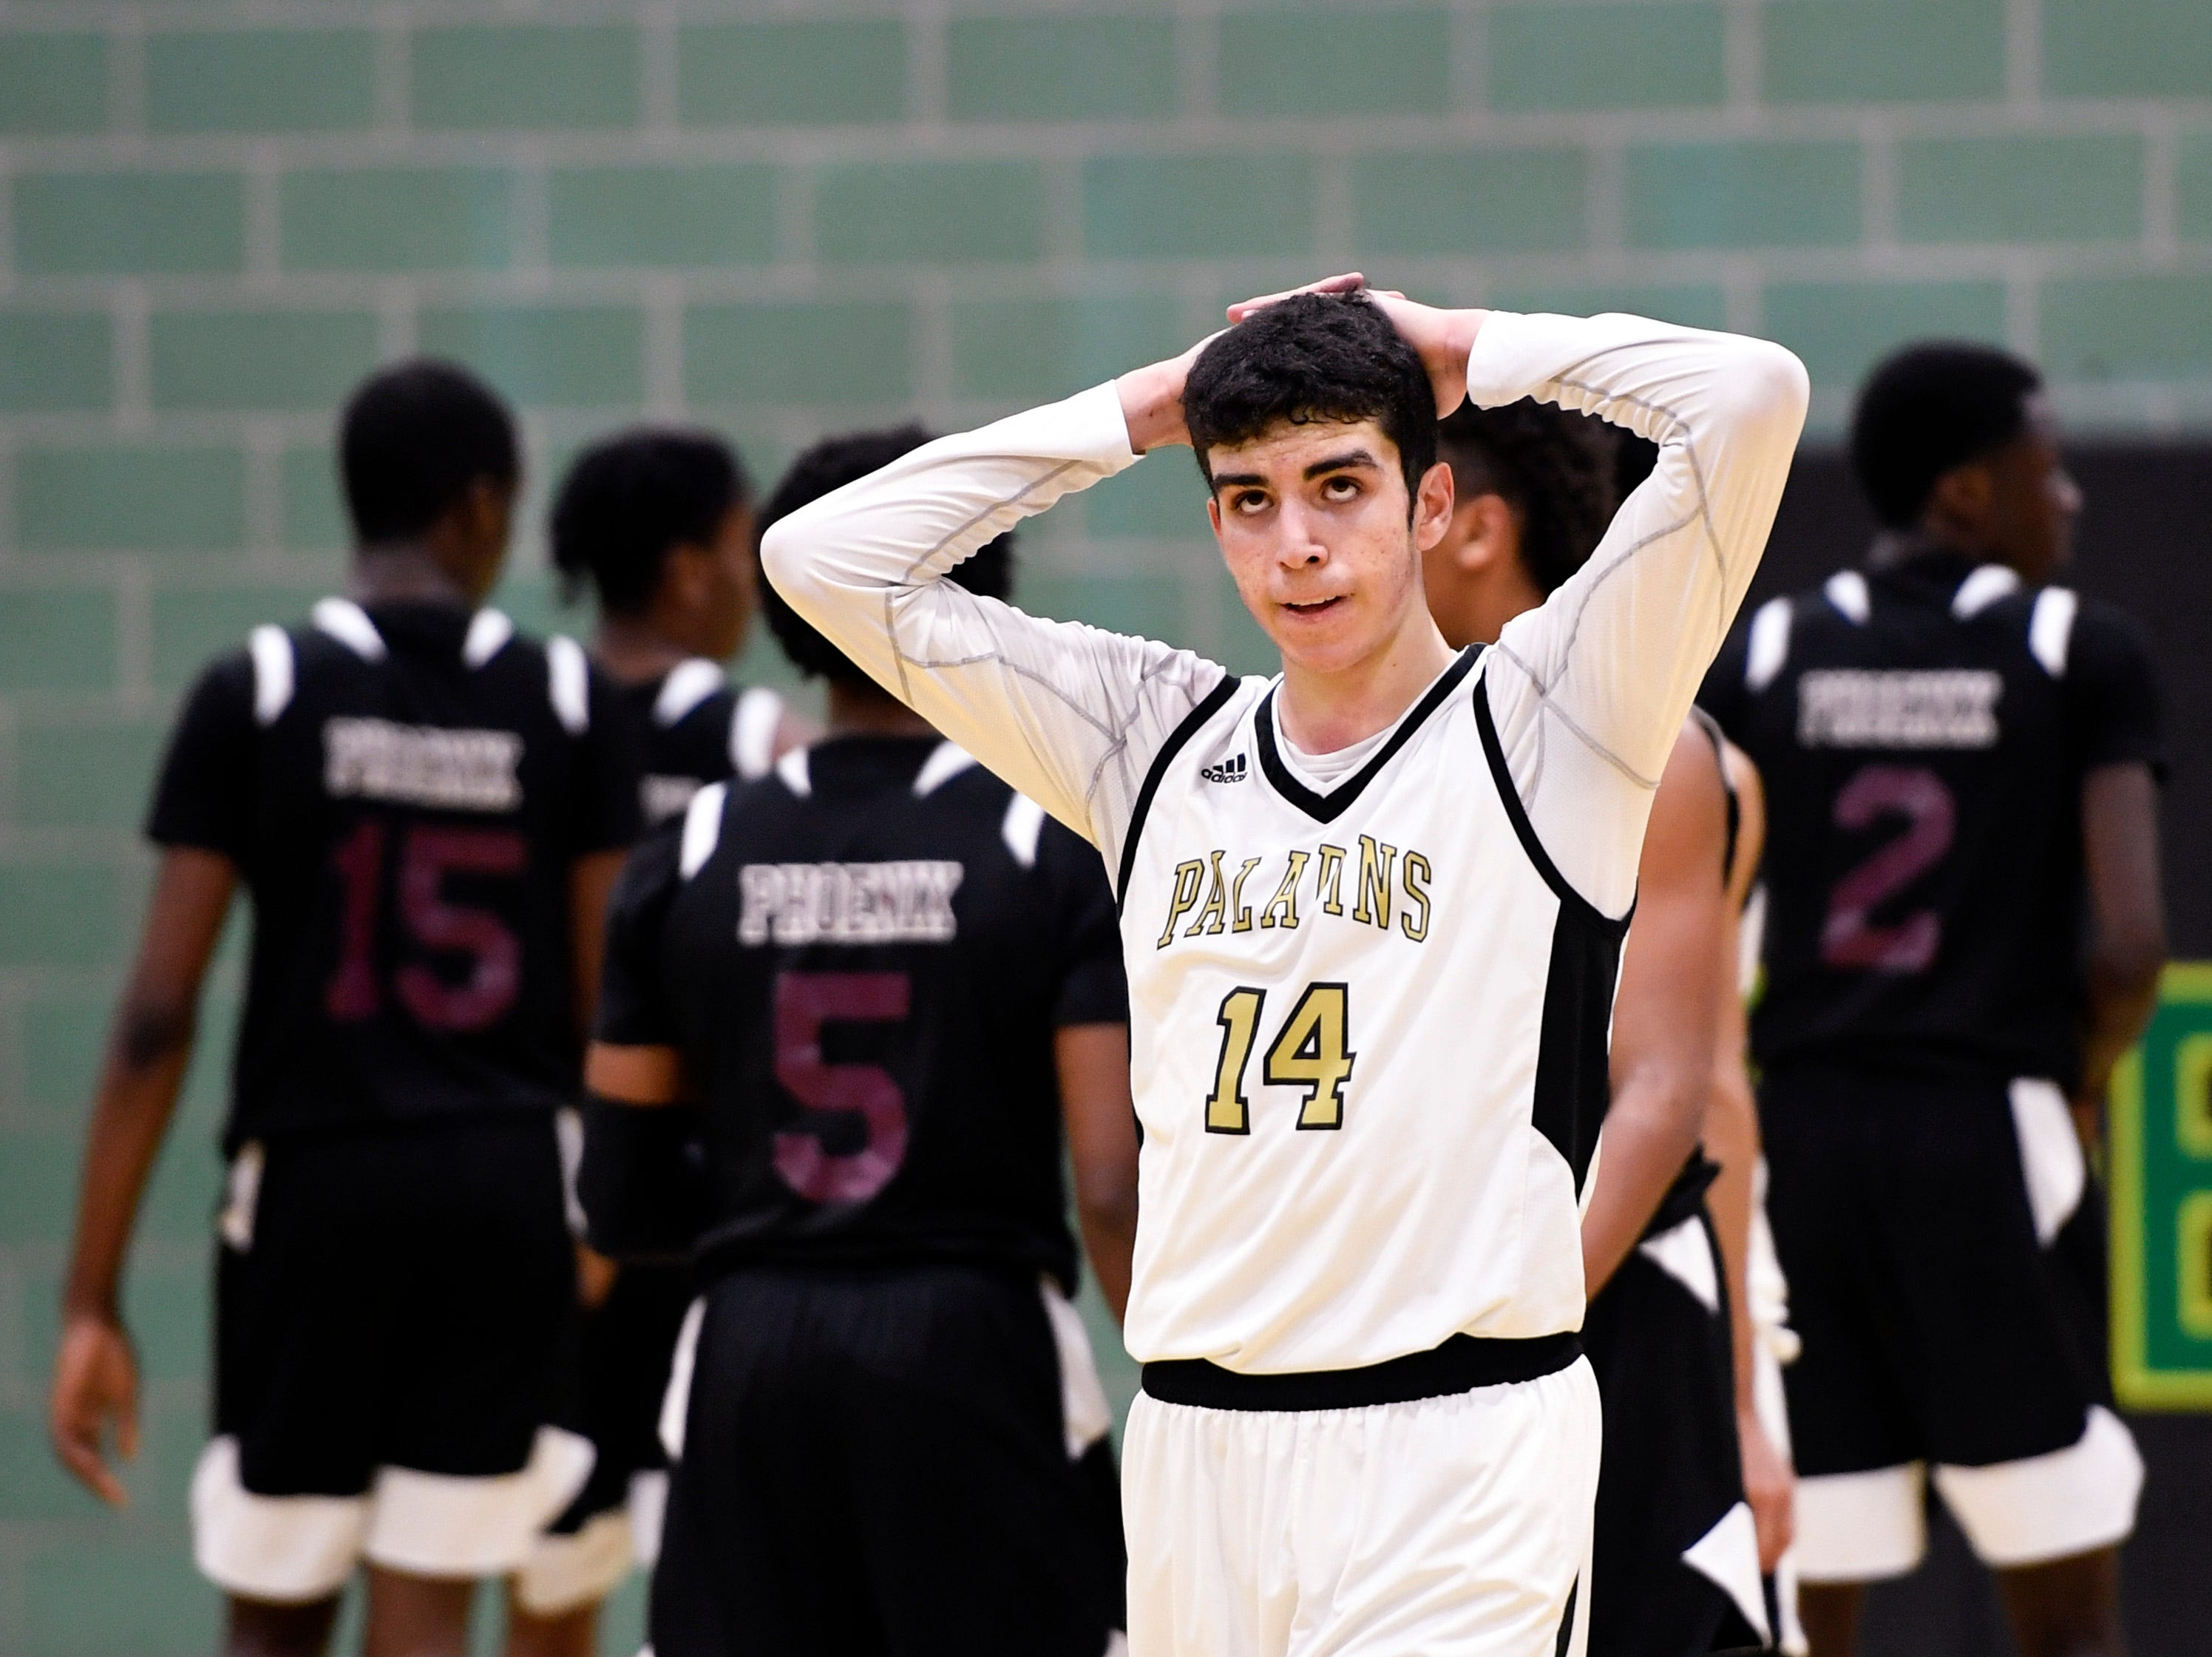 Paramus Catholic guard Cameron Burns reacts as his team falls to University 64-59 in Day 2 of the Public vs. Private Basketball Showcase at St. Joseph Regional on Sunday, Jan. 12, 2019, in Montvale.